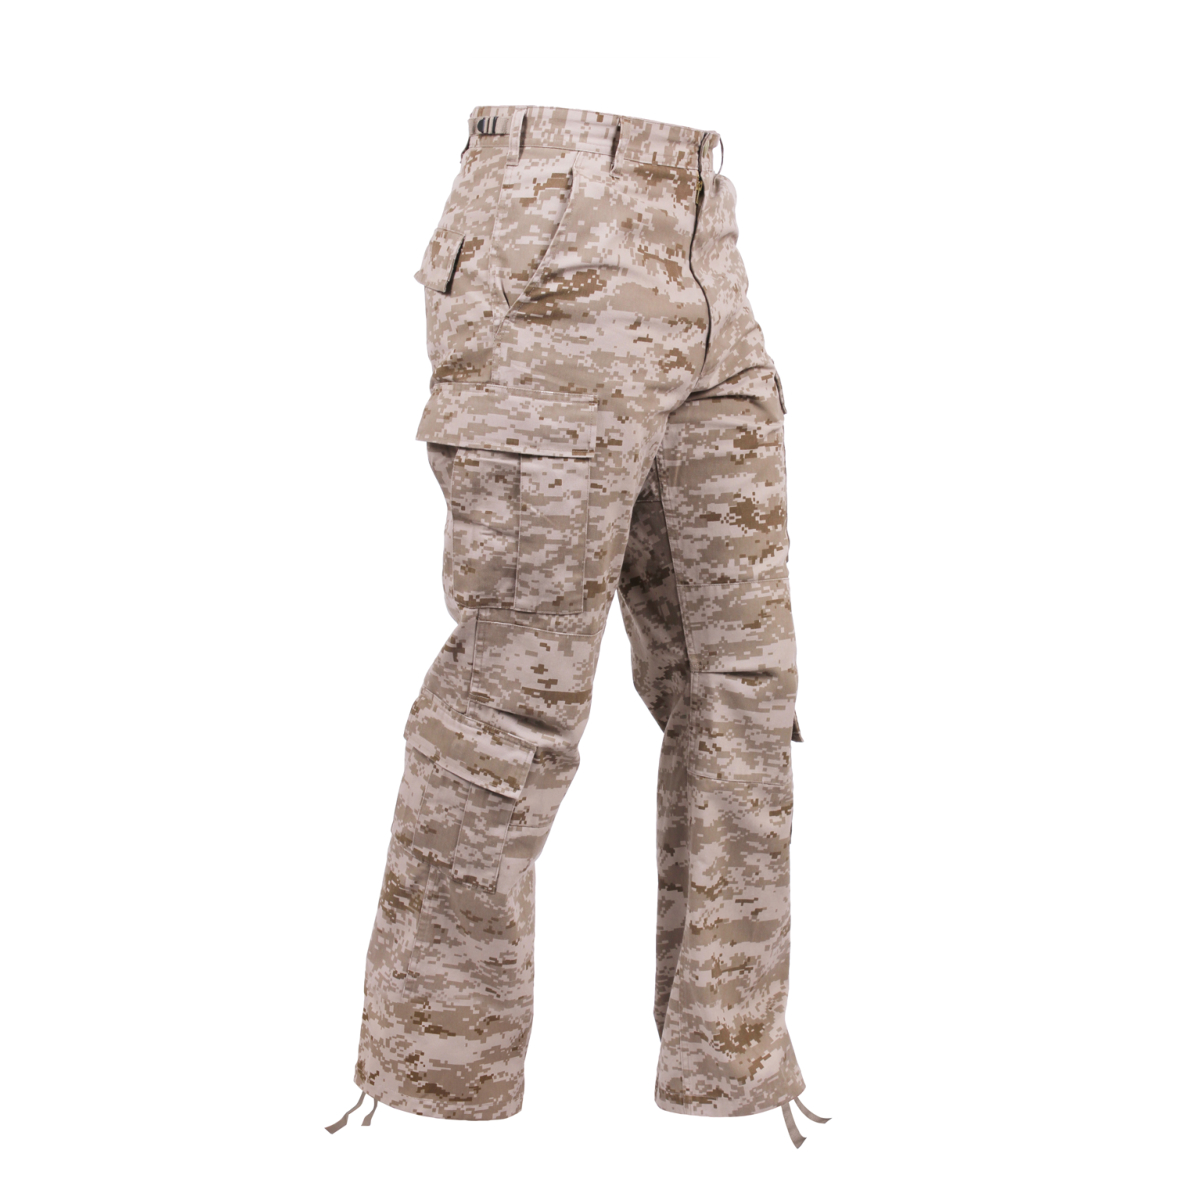 Rothco Vintage Camo Paratrooper Fatigue Pants, Desert Digital Camo by Rothco